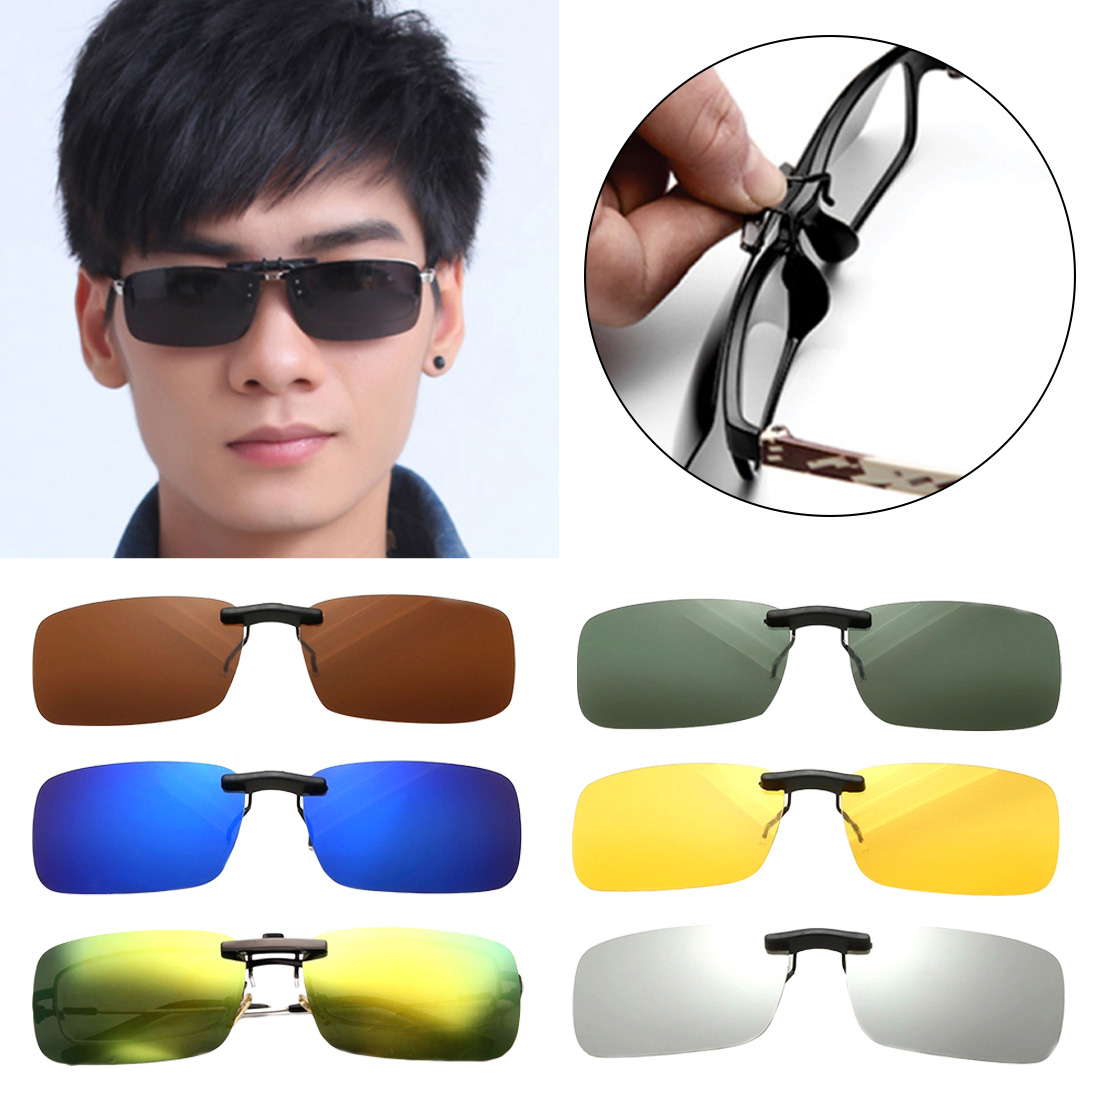 New 1Pcs Polarized Clip On Sunglasses Near-Sighted Driving Night Vision Lens